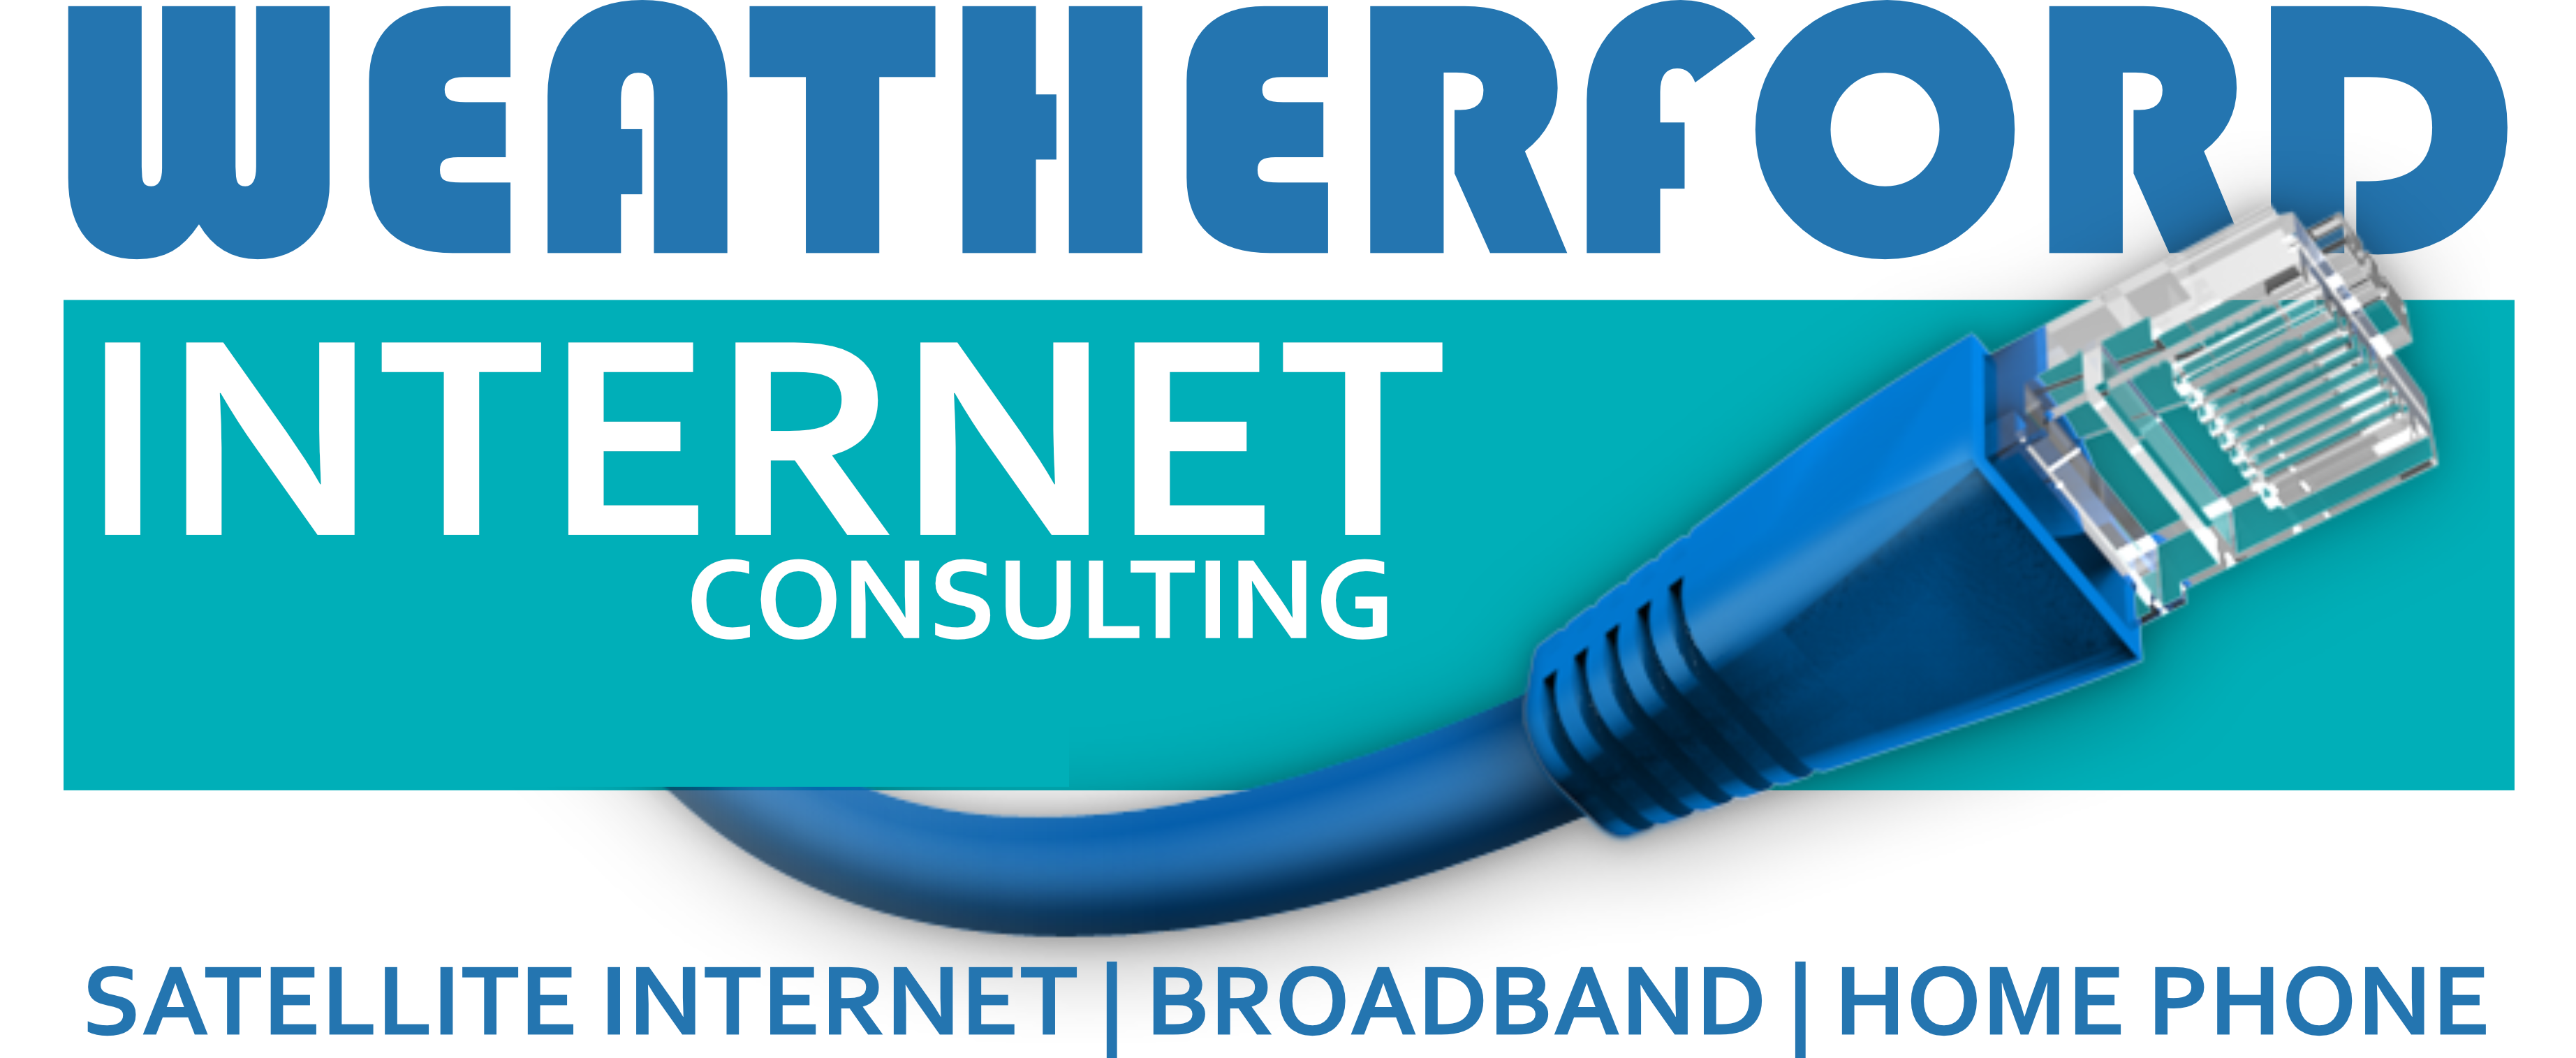 WEATHERFORD INTERNET CONSULTING OF SOUTH CAROLINA